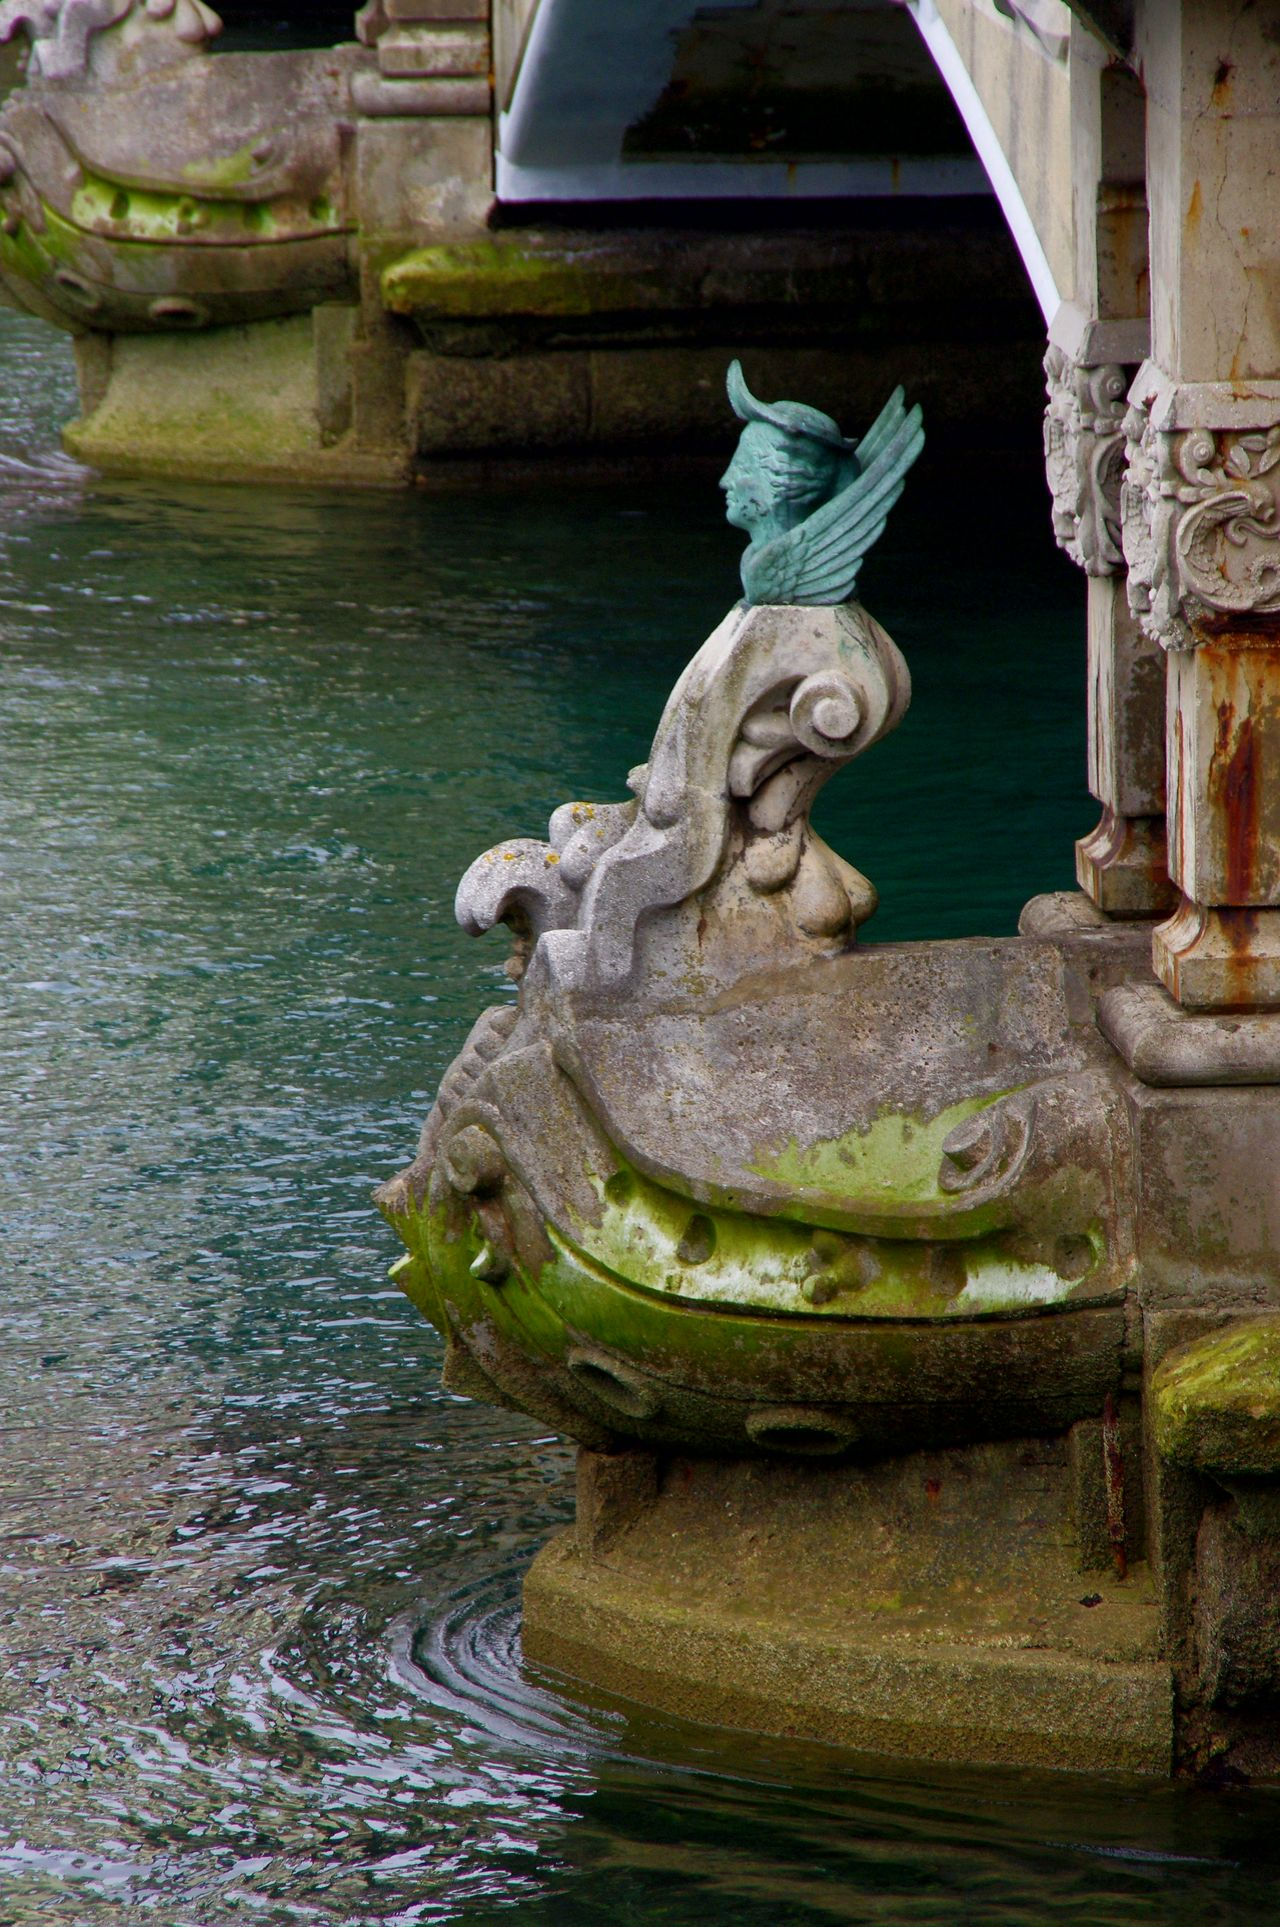 Water Animal Representation Statue Sculpture No People Animal Themes Animals In The Wild Outdoors Day Reptile Dragon Nature Close-up Españoles Y Sus Fotos Streamzoofamily EyeEm Selects Symplicity Architecture